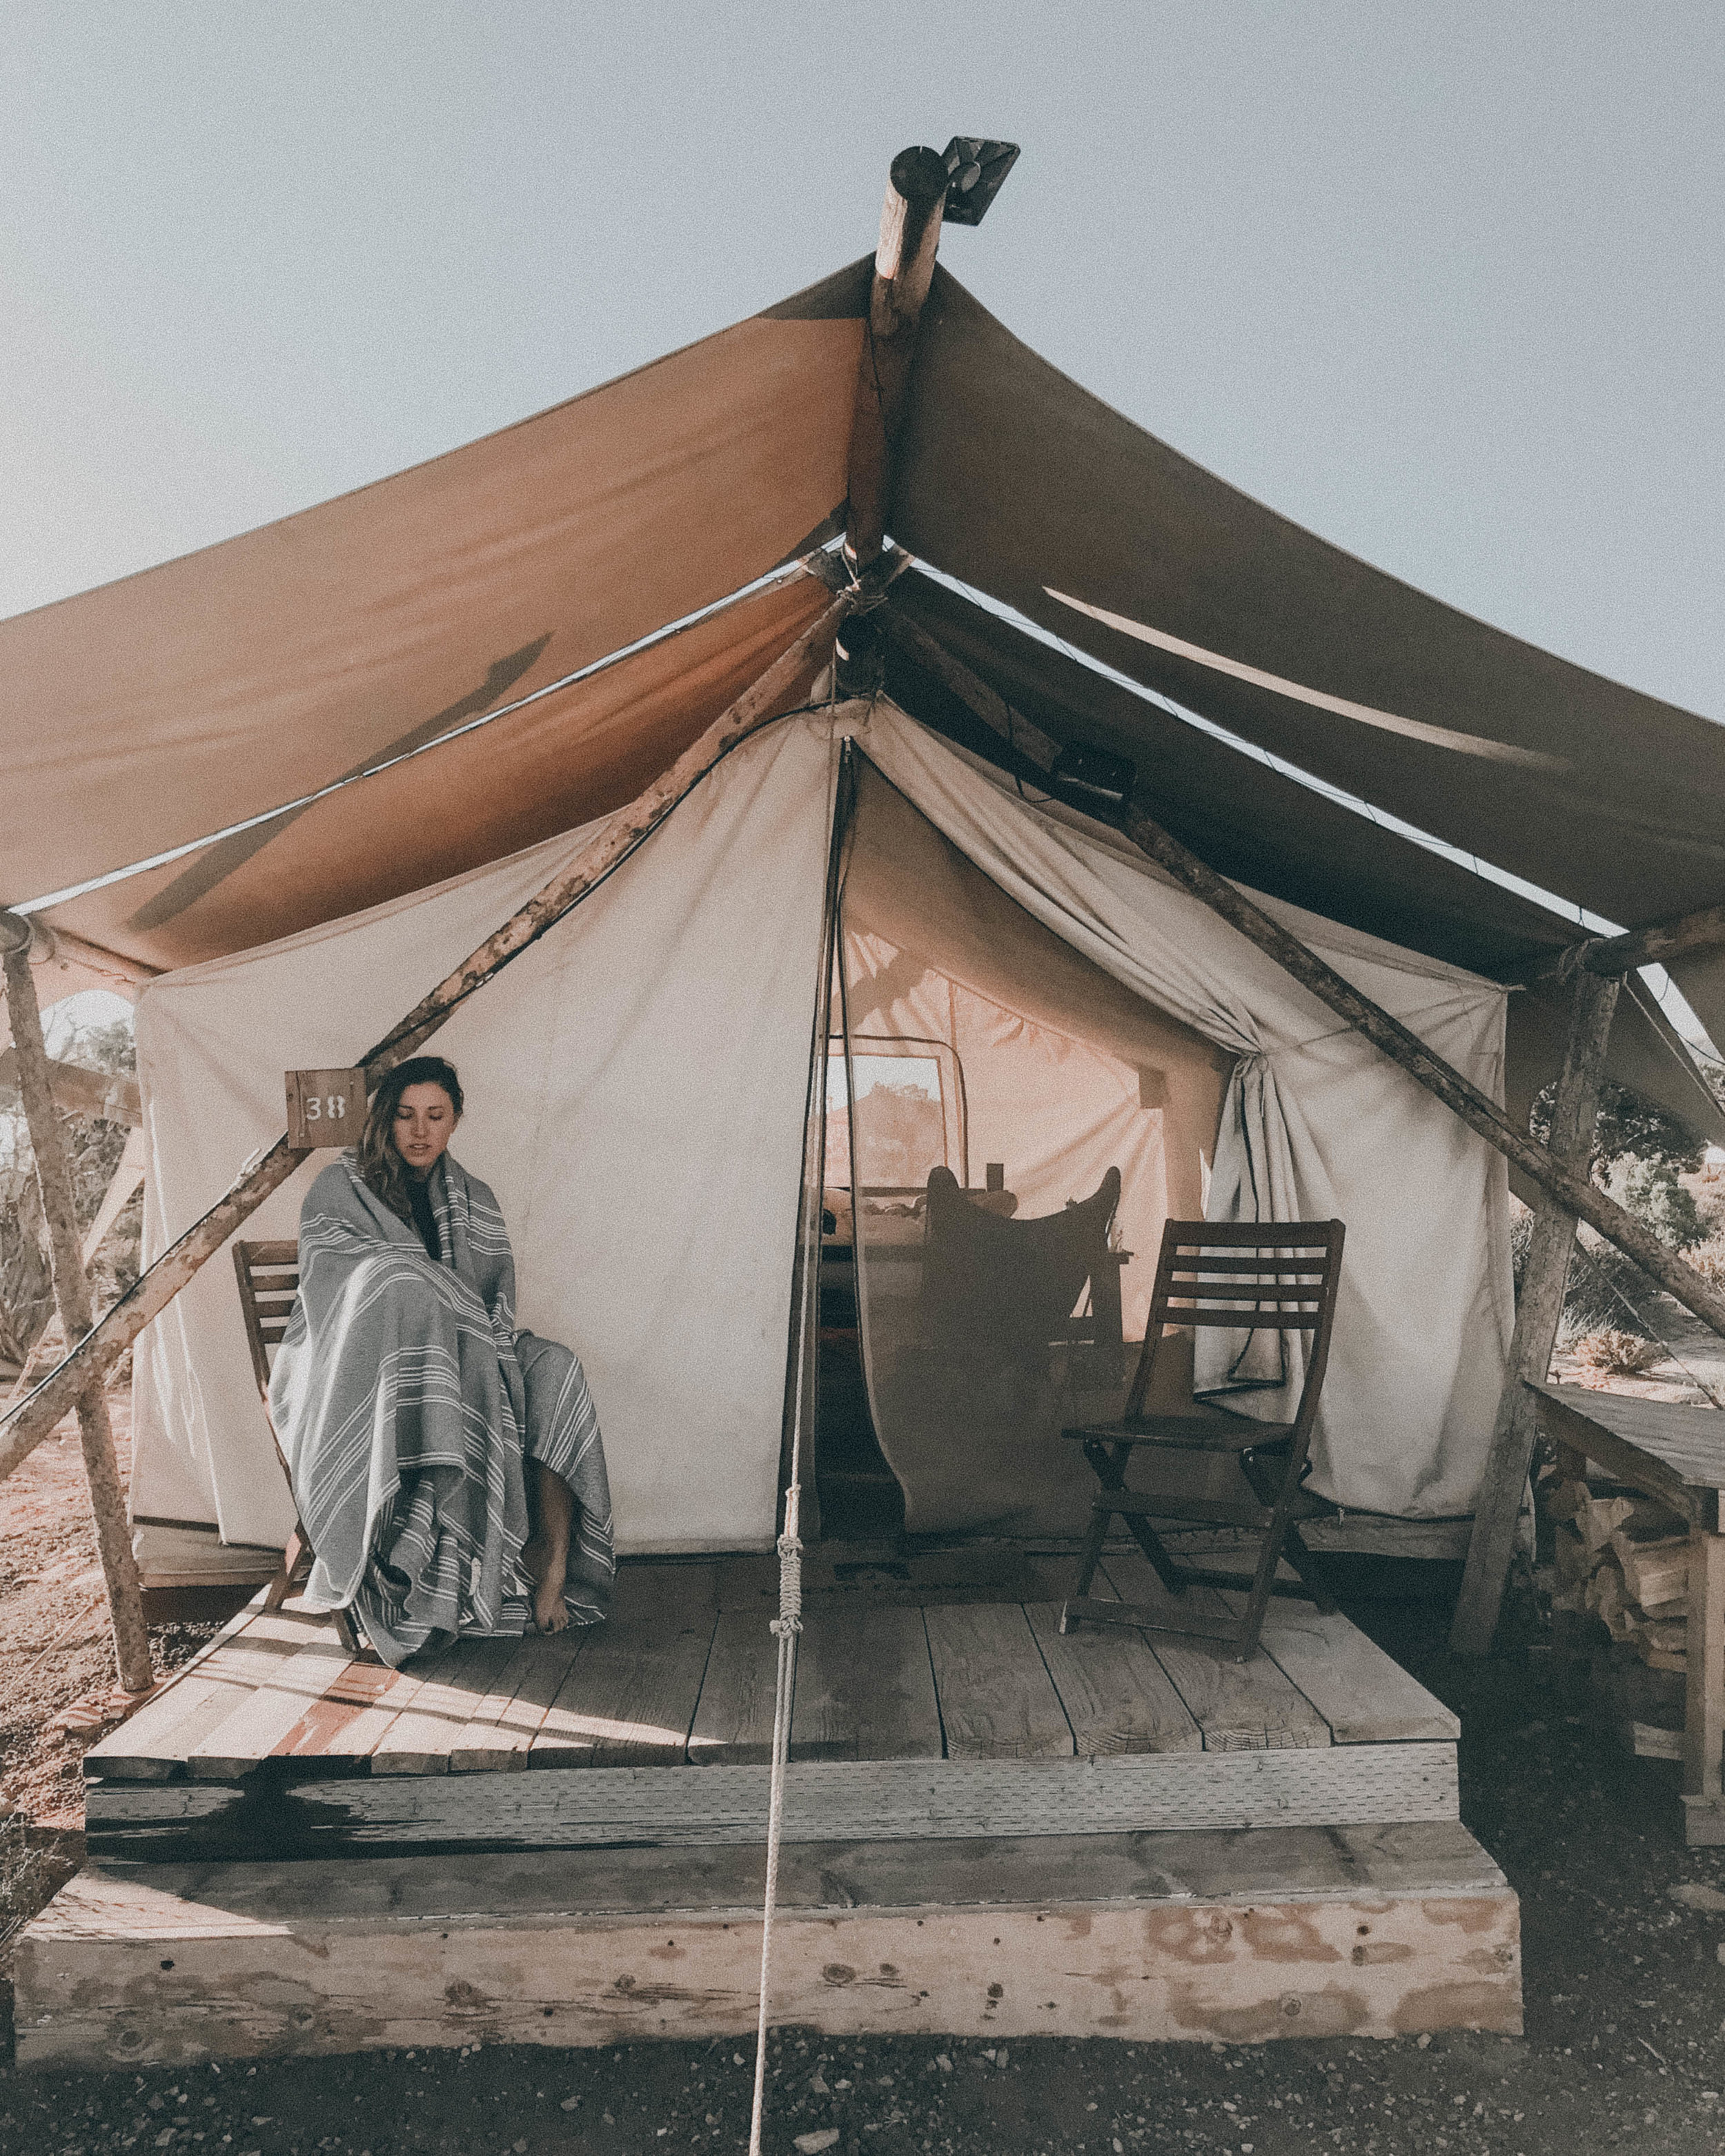 Glamping in Moab - the Under Canvas Experience